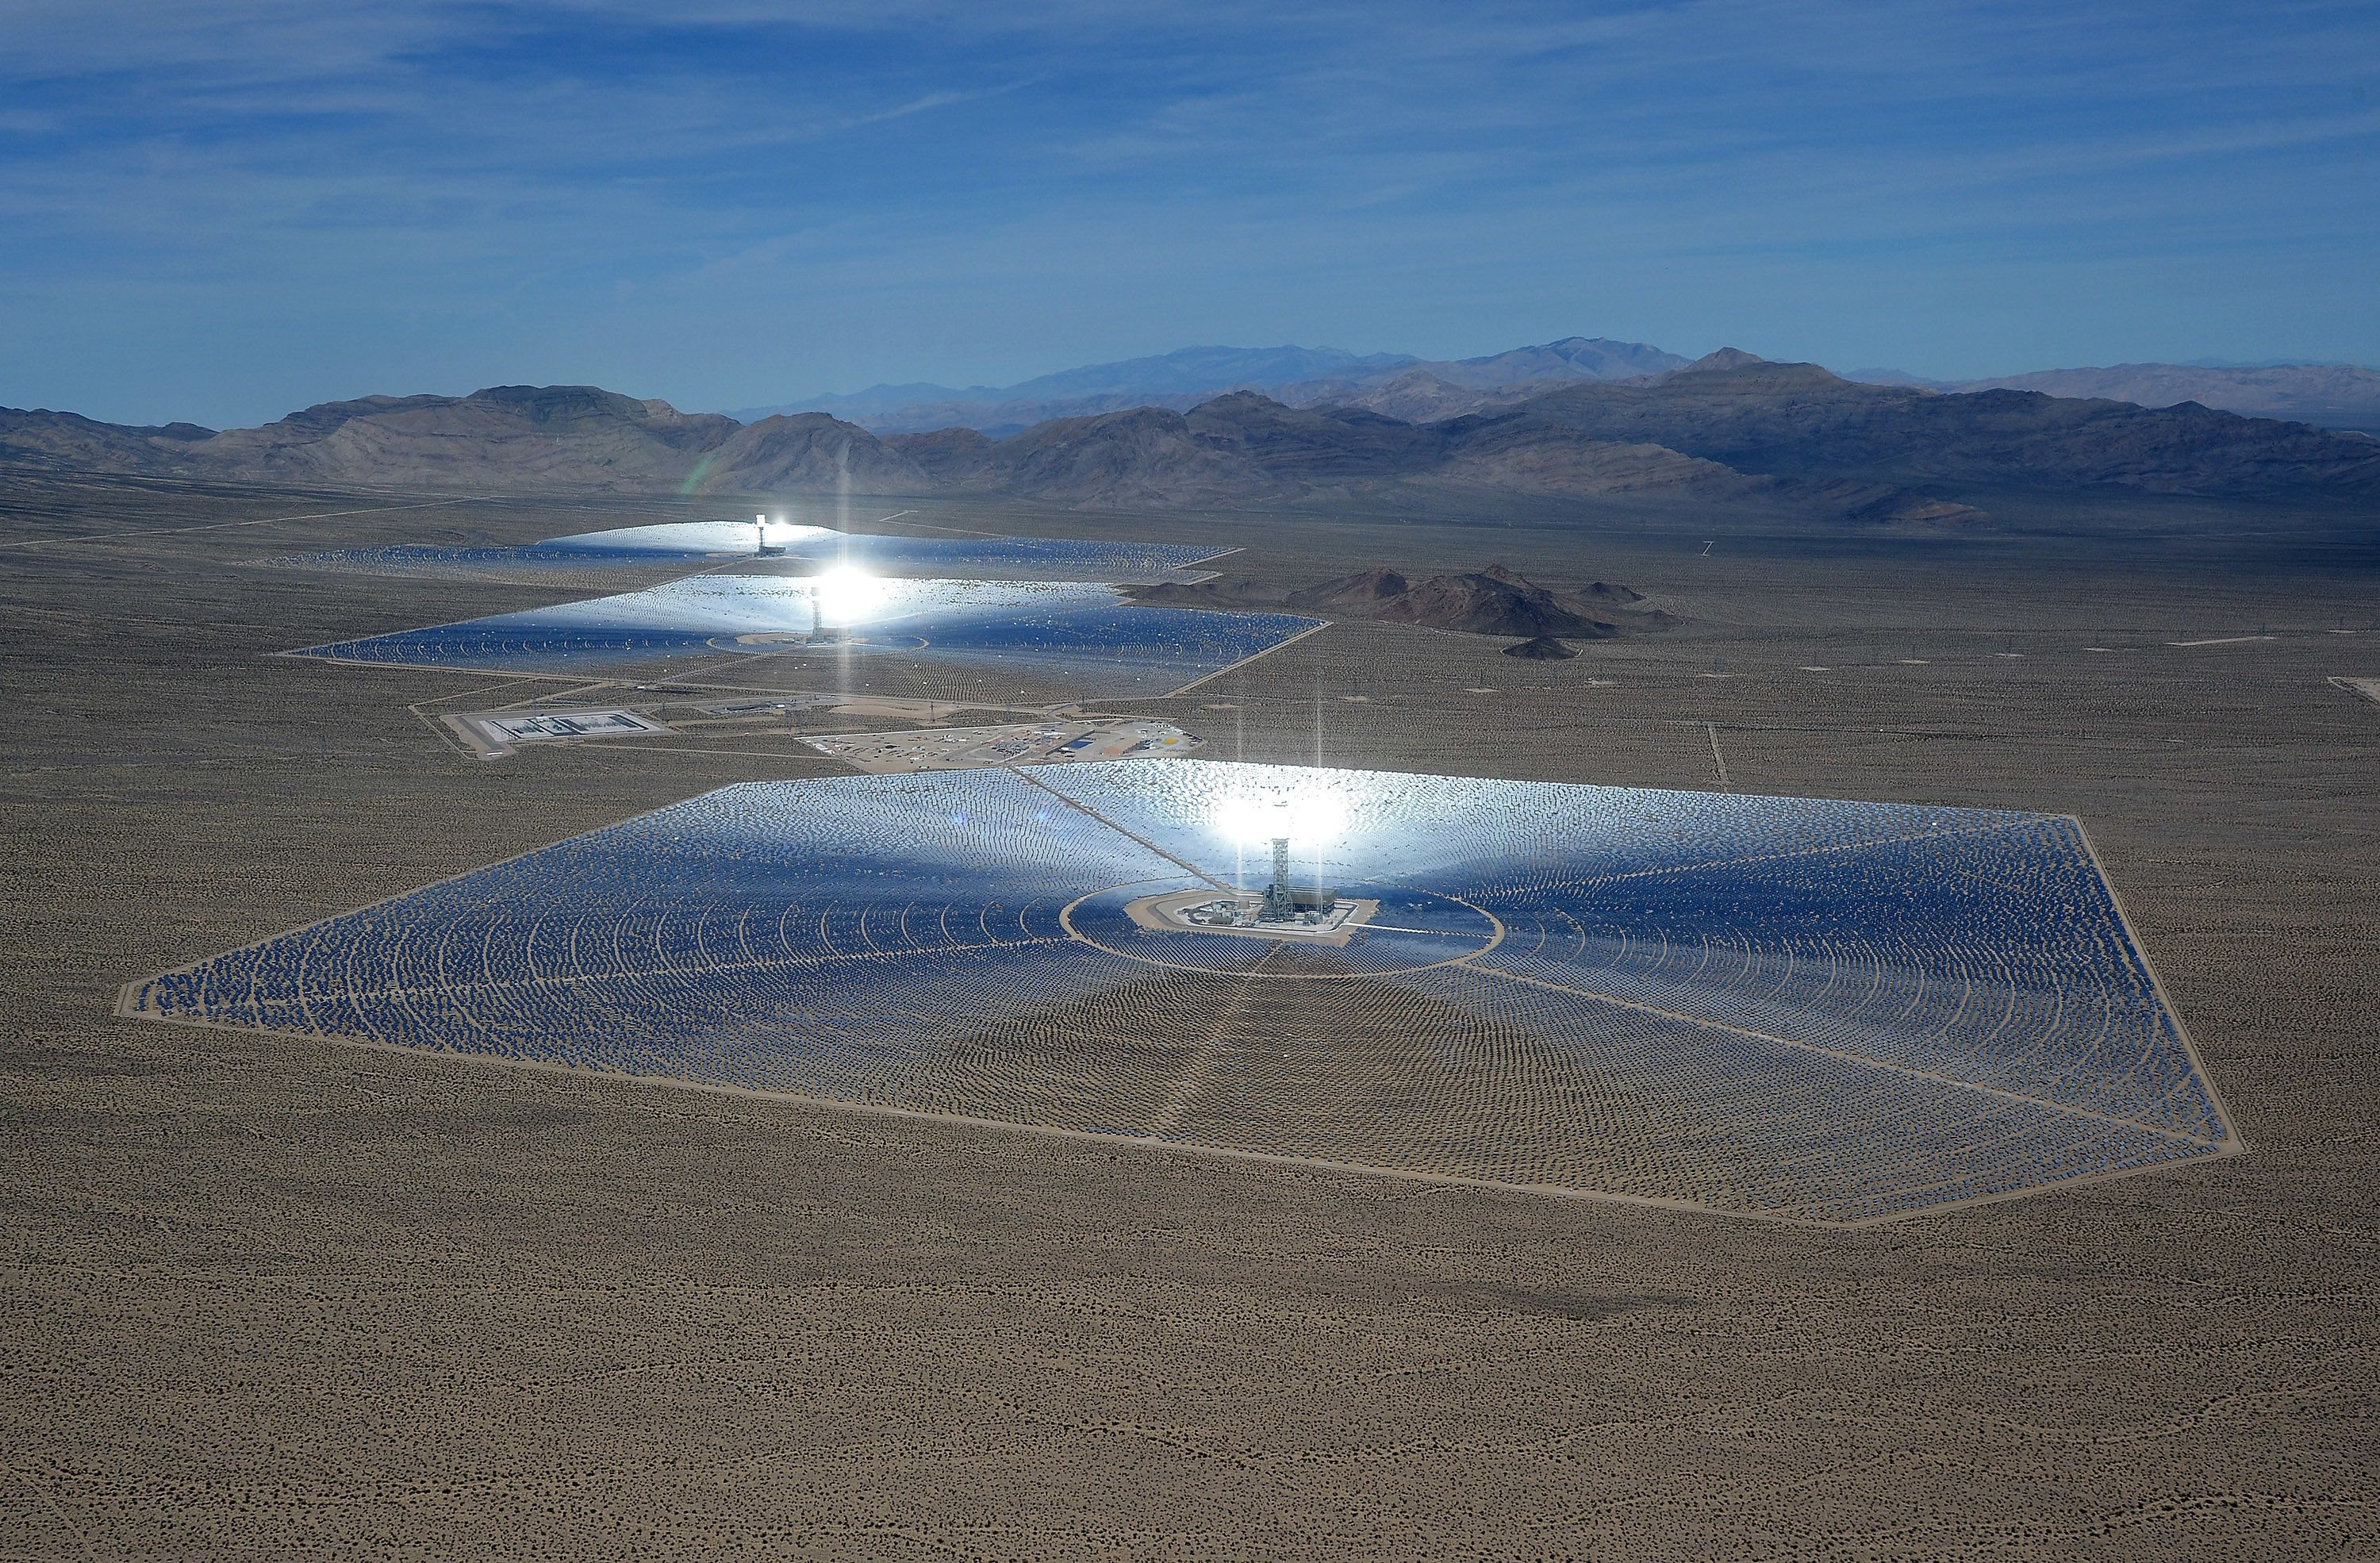 Australia Just Became Home To The World's Largest Solar Thermal Power